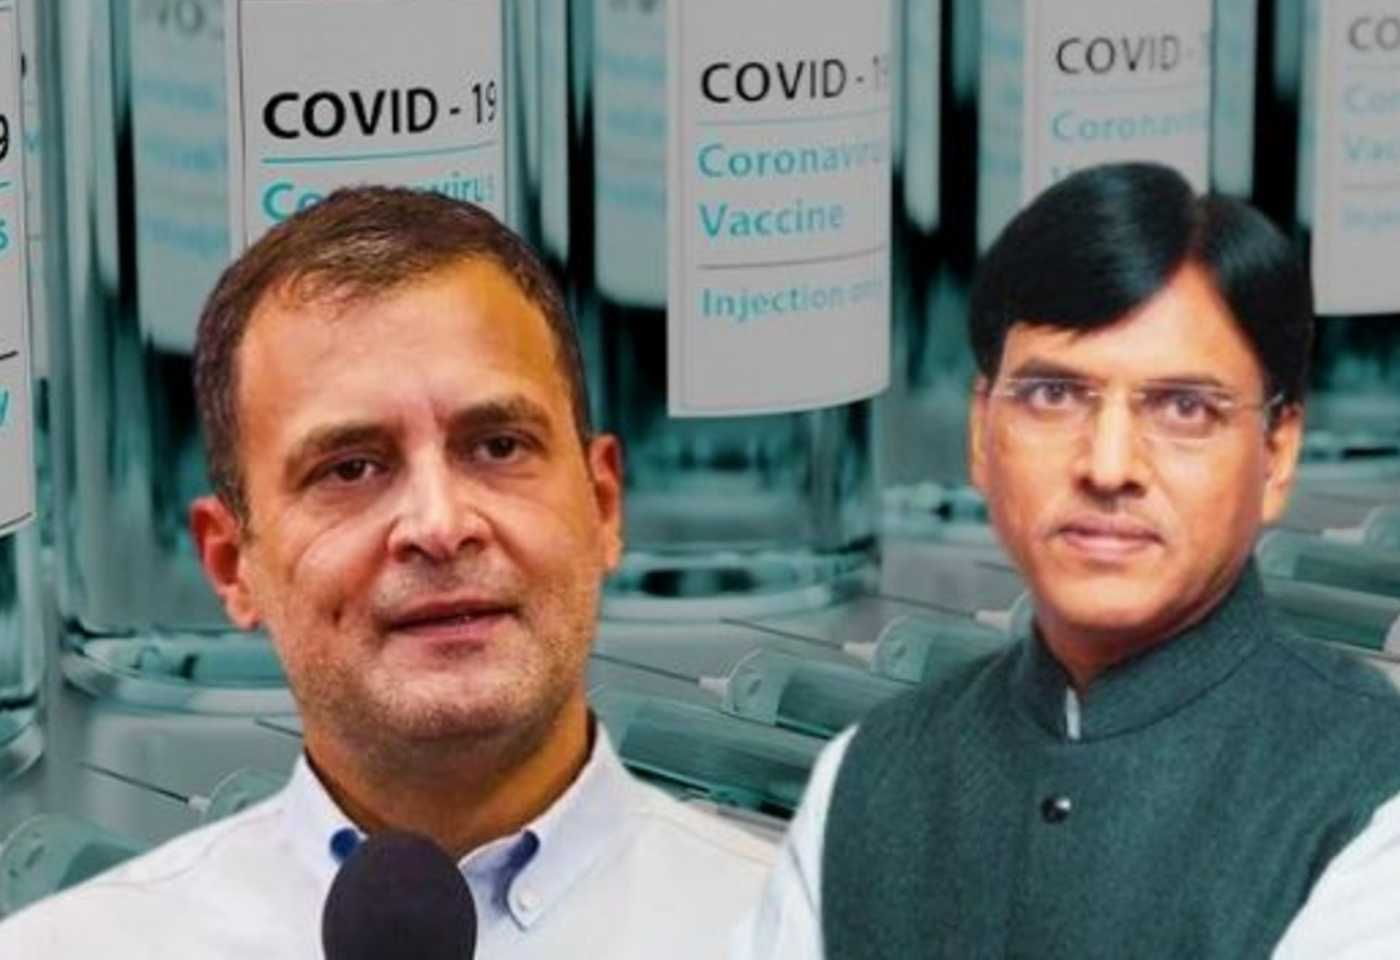 Mansukh Mandaviya Slammed Rahul Gandhi Over His Questions On Corona Vaccination said More Than 13 Crore Vaccines Administered In July